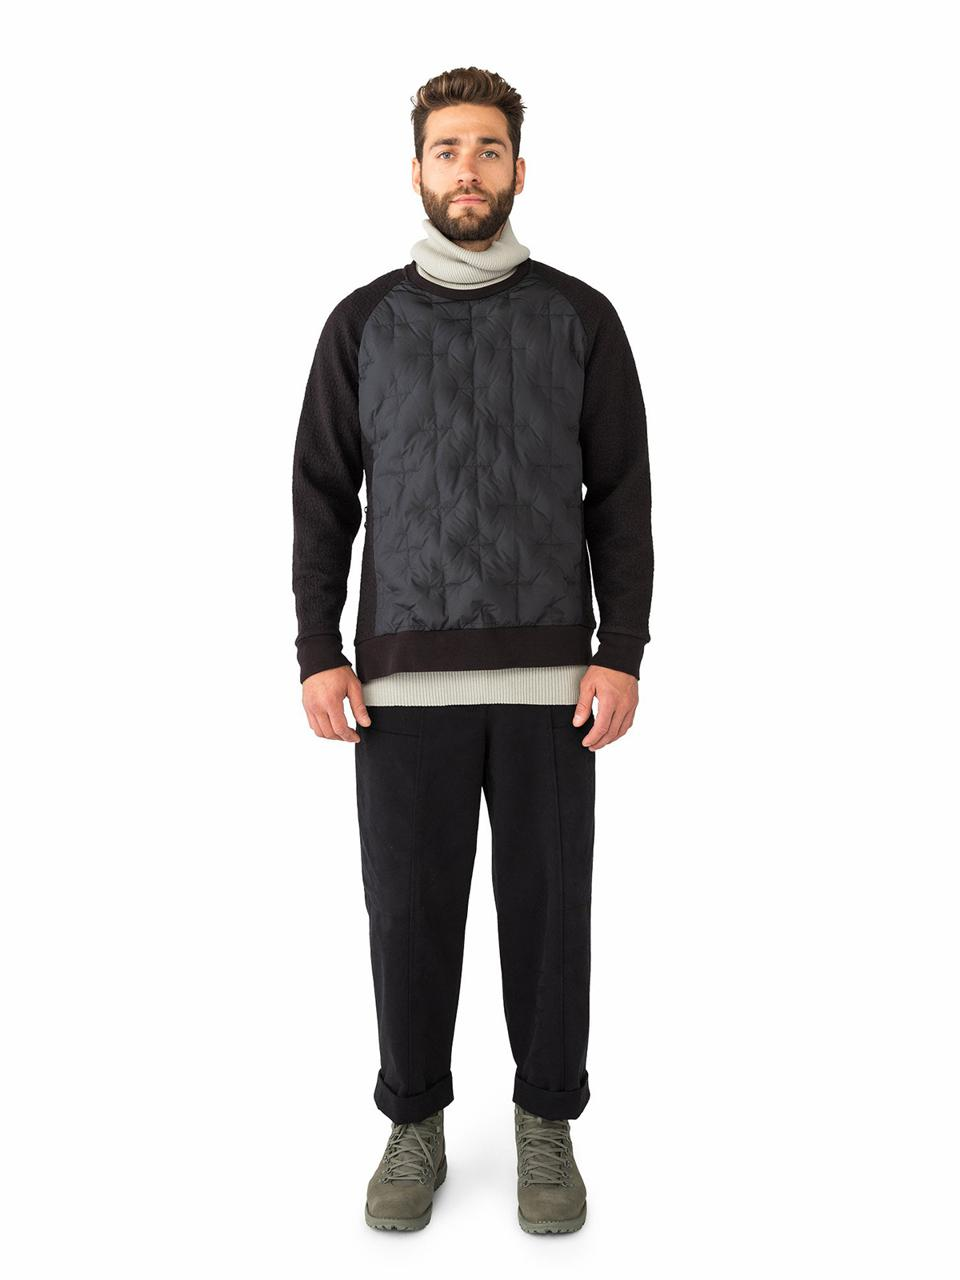 Find Holden's Down Crew Sweater and other high-end, sustainable pieces at Future Proper, the first online boutique for premium men's activewear brands.